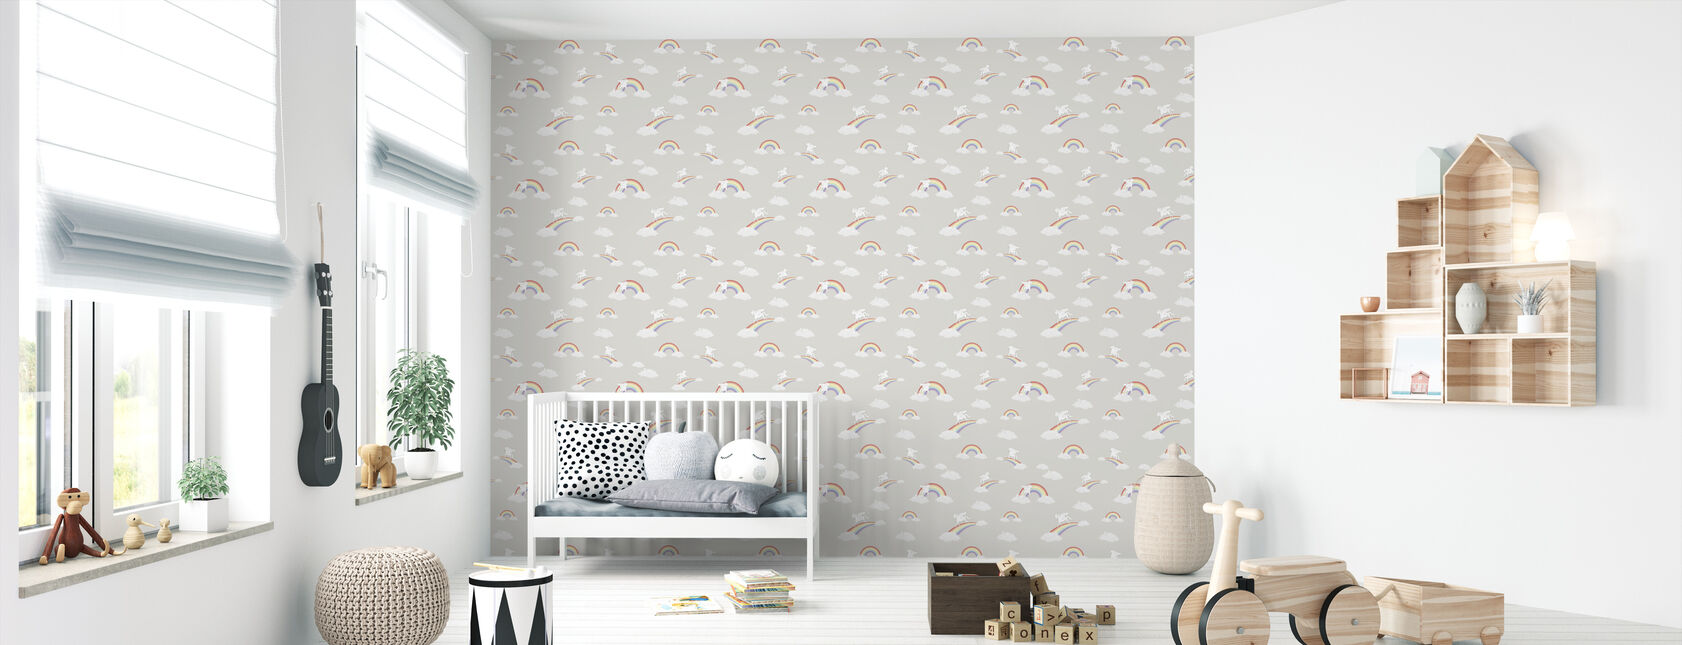 Unicorns & Rainbows - Wallpaper - Nursery